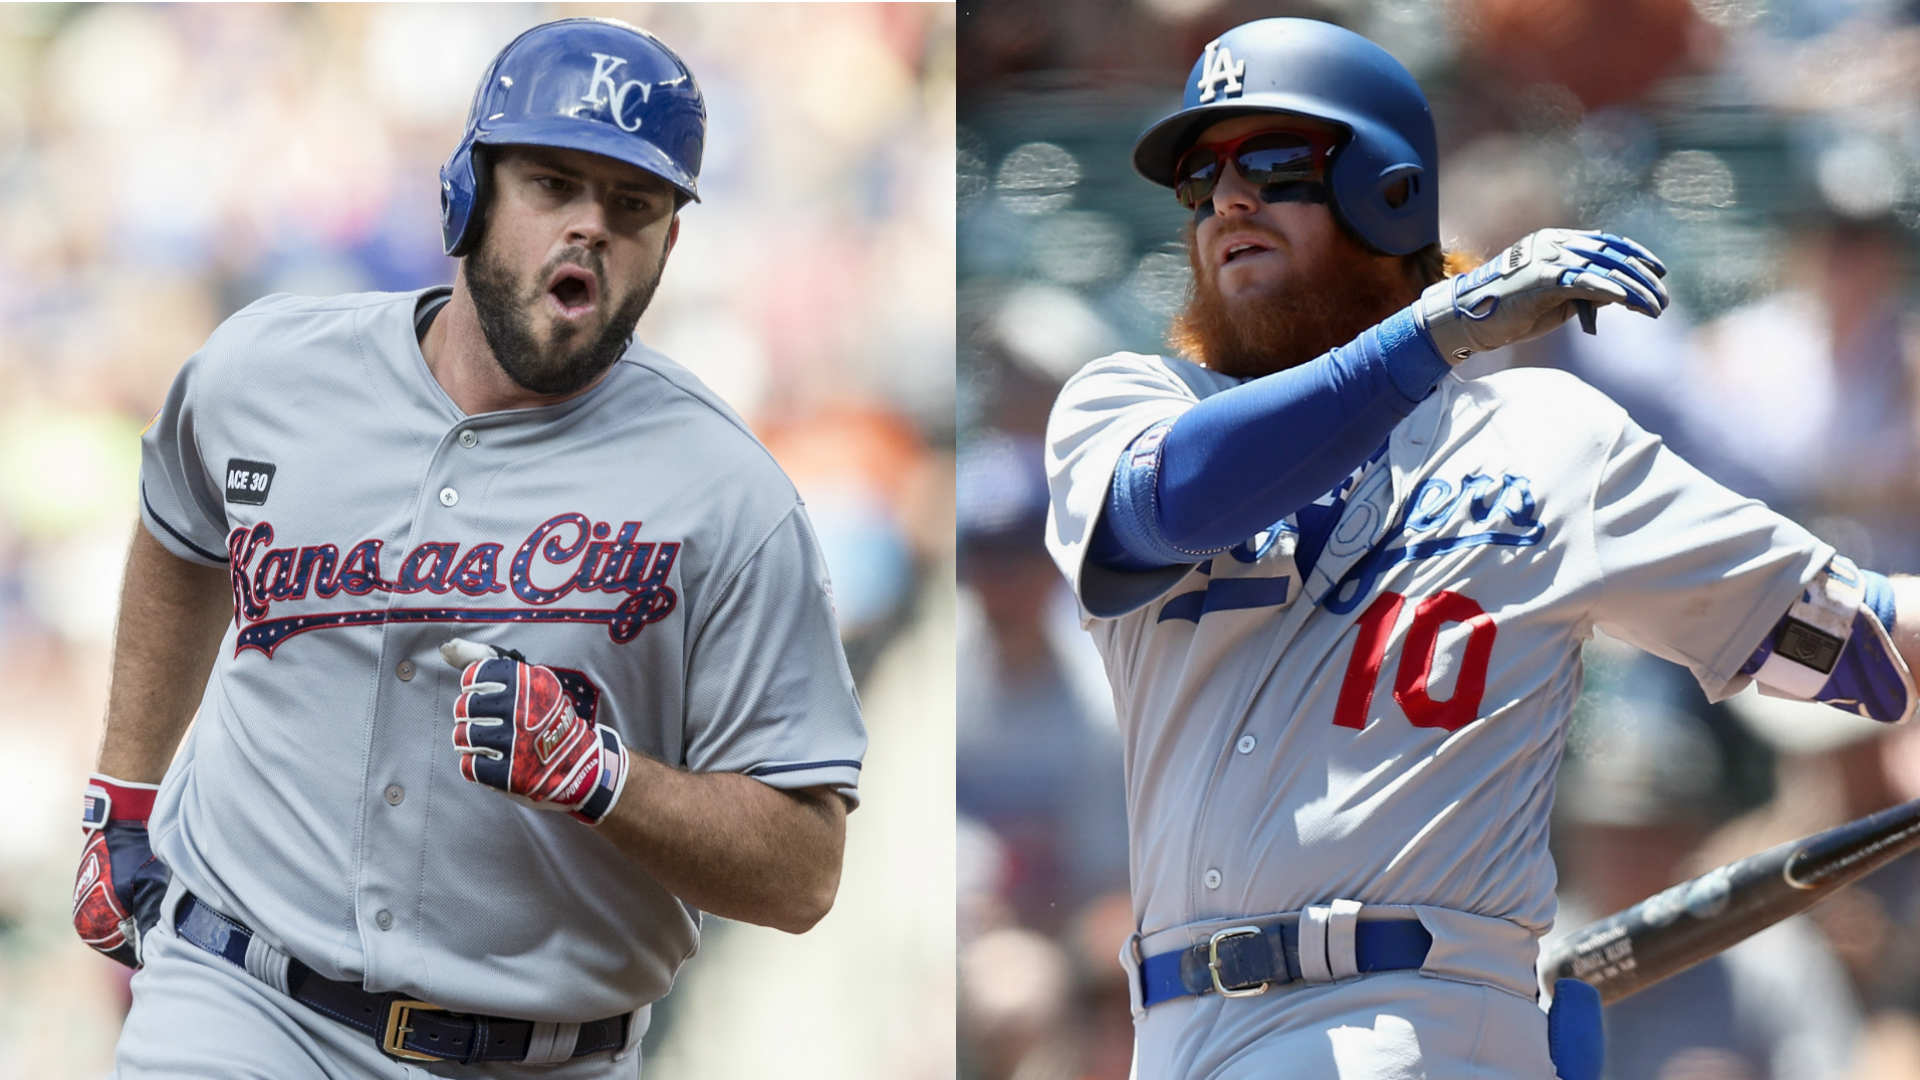 Royals' Mike Moustakas selected to second All-Star Game in fan vote